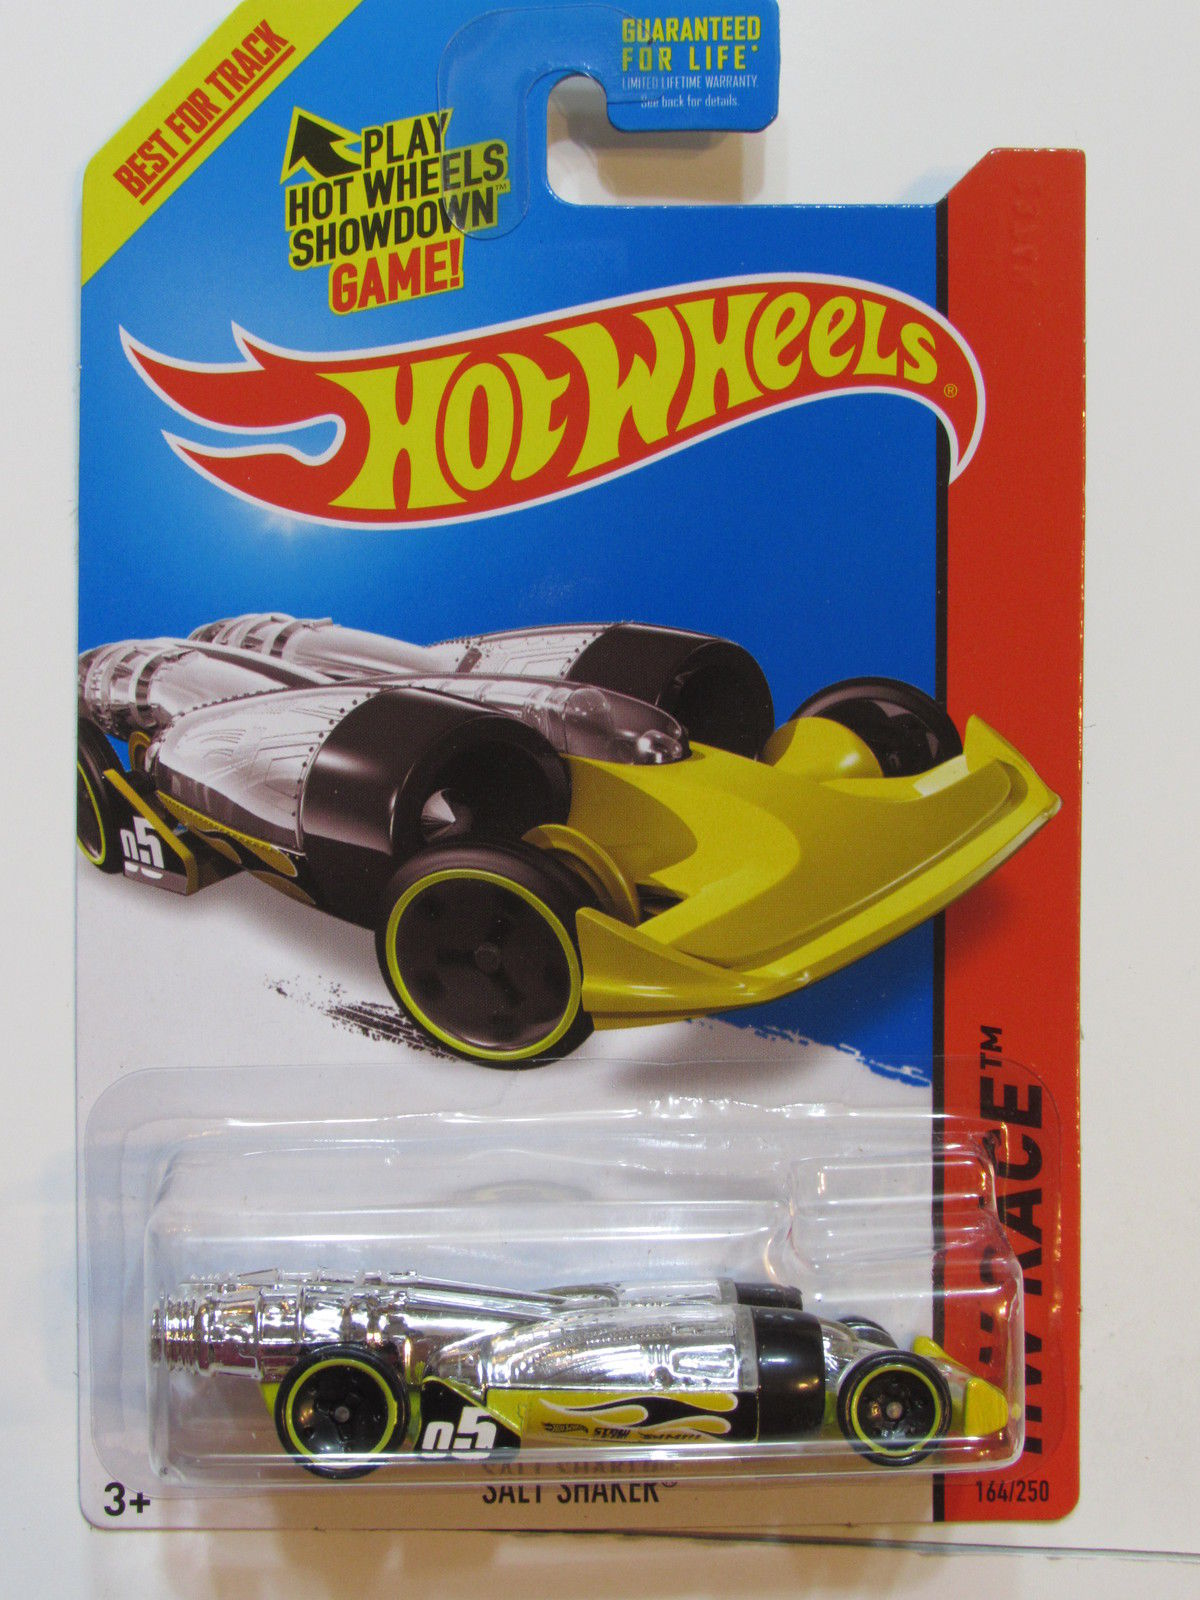 HOT WHEELS 2015 HW RACE - SUPER CHROMES SALT SHAKER